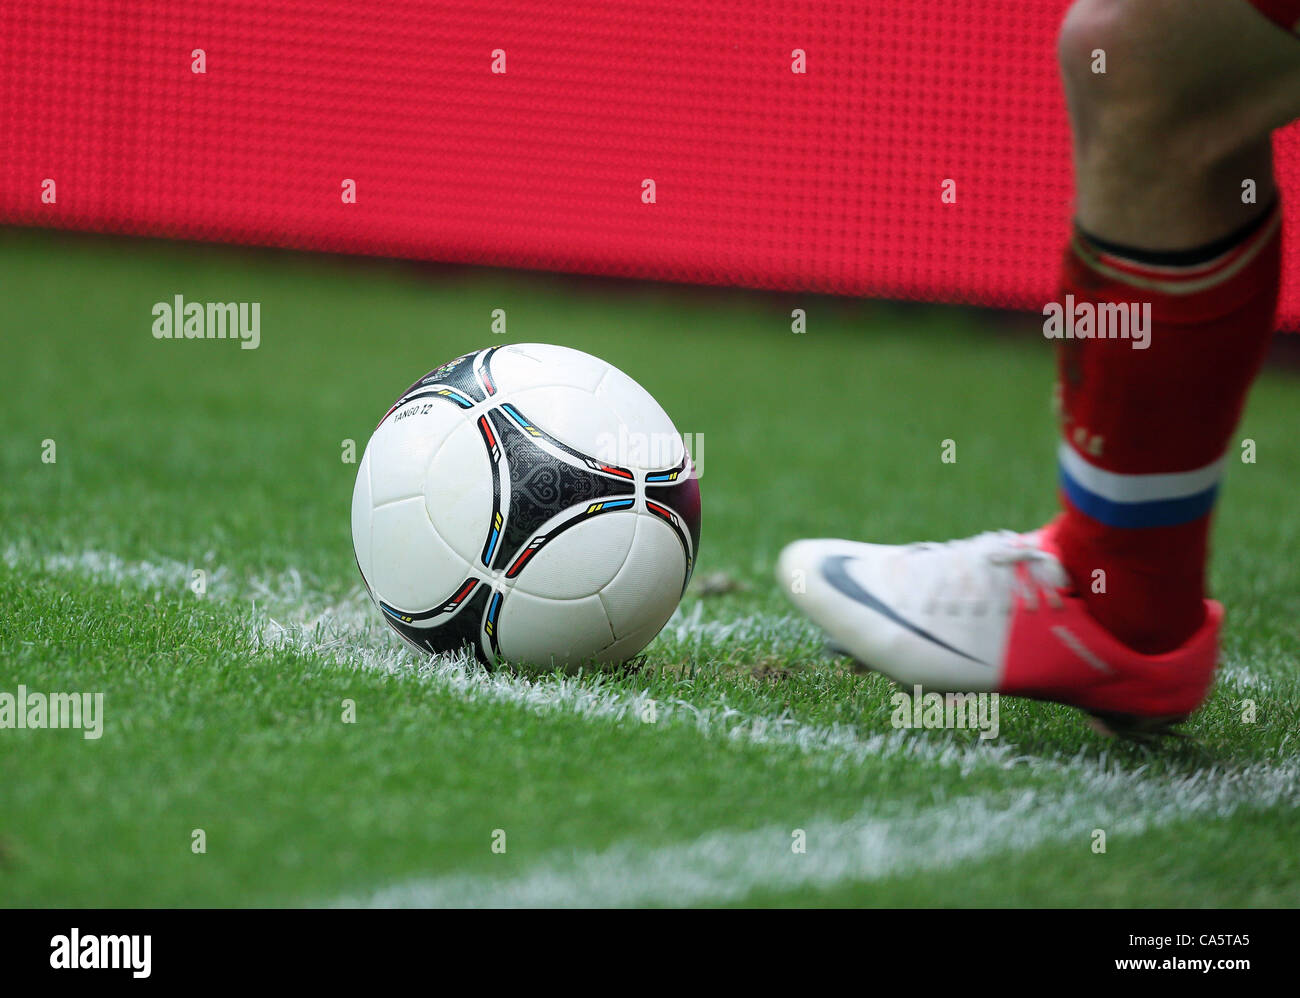 OFFICIAL MATCH BALL POLAND V RUSSIA NATIONAL STADIUM WARSAW POLAND 12 June 2012 - Stock Image